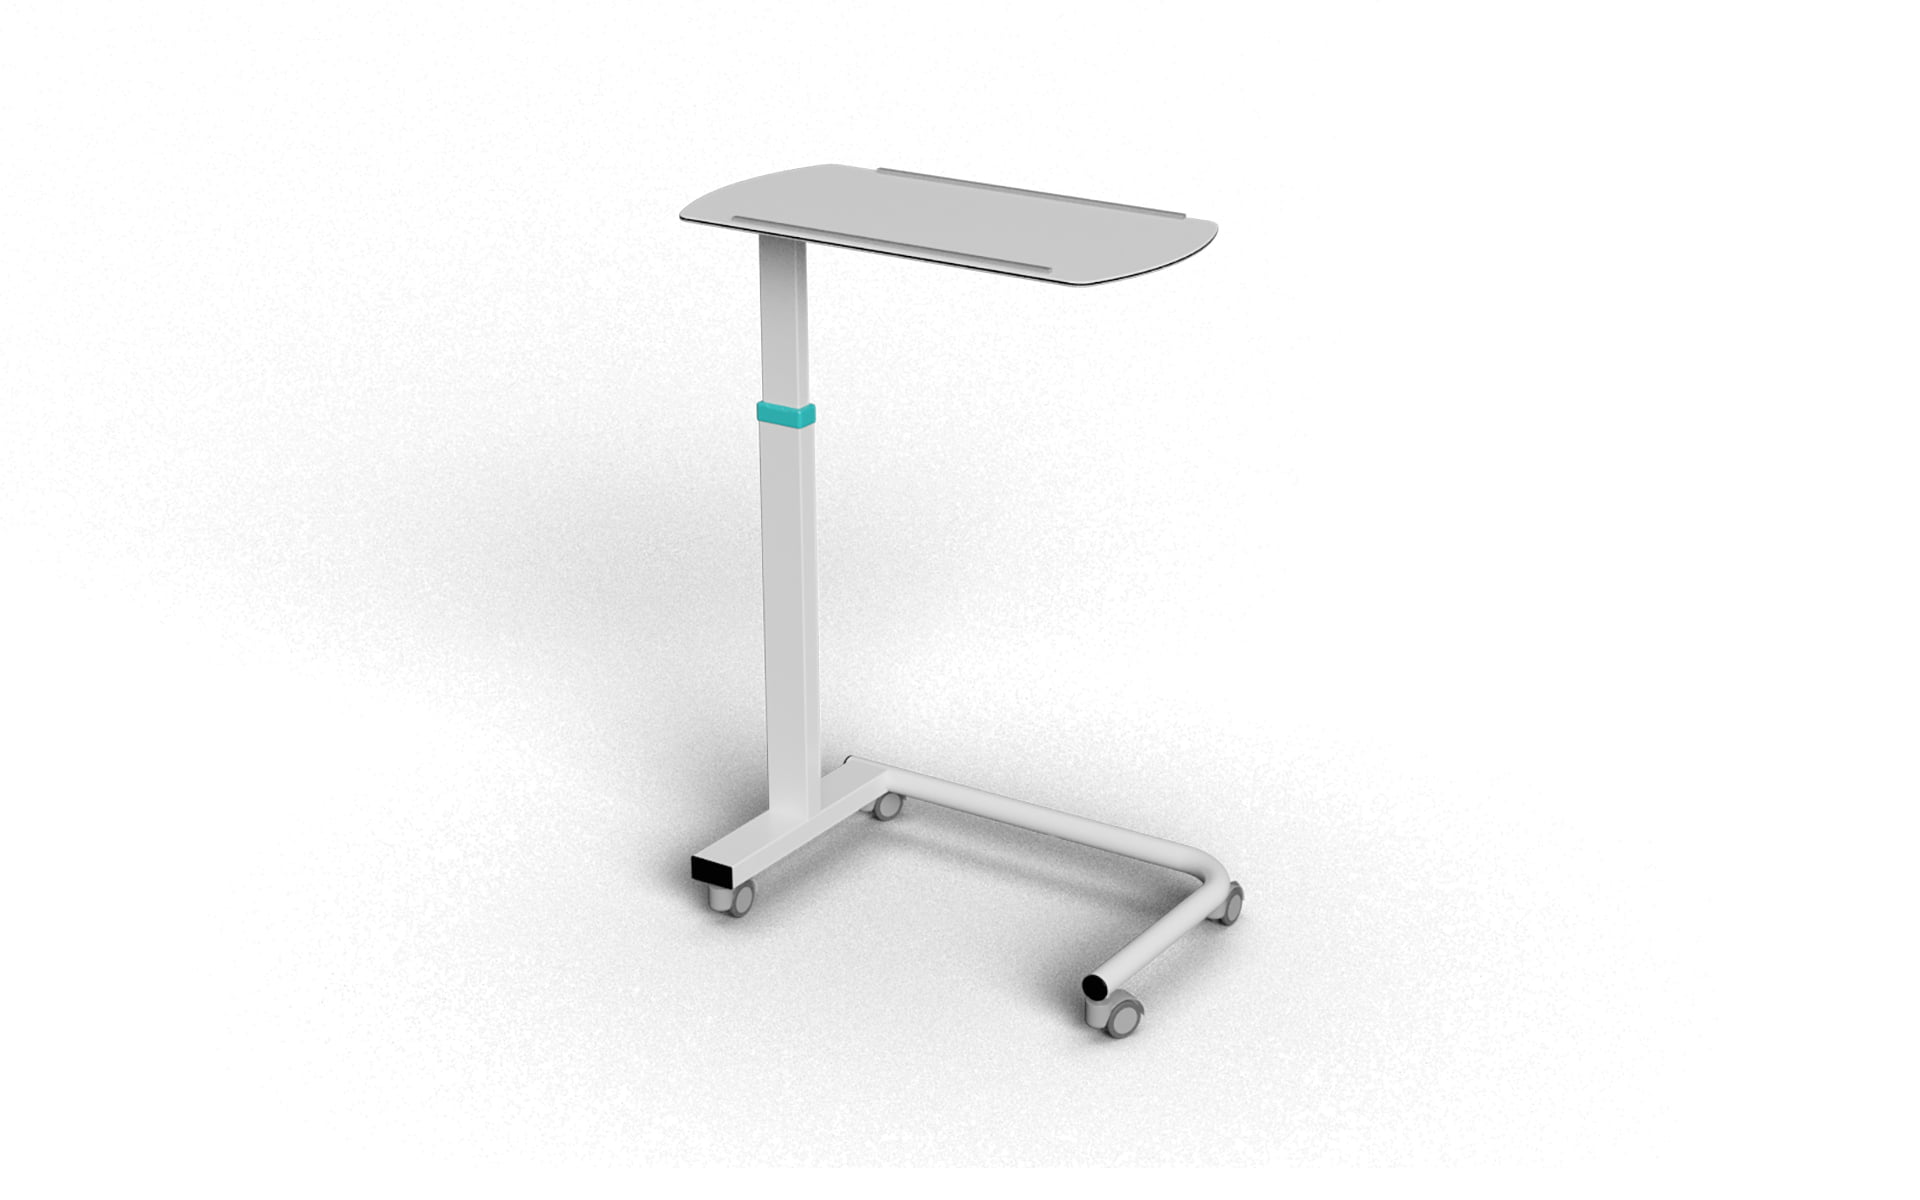 BASIC MODEL COMPACT LAMINATE OVERBED TABLE WITH MANUAL HEIGHT ADJUSTMENT